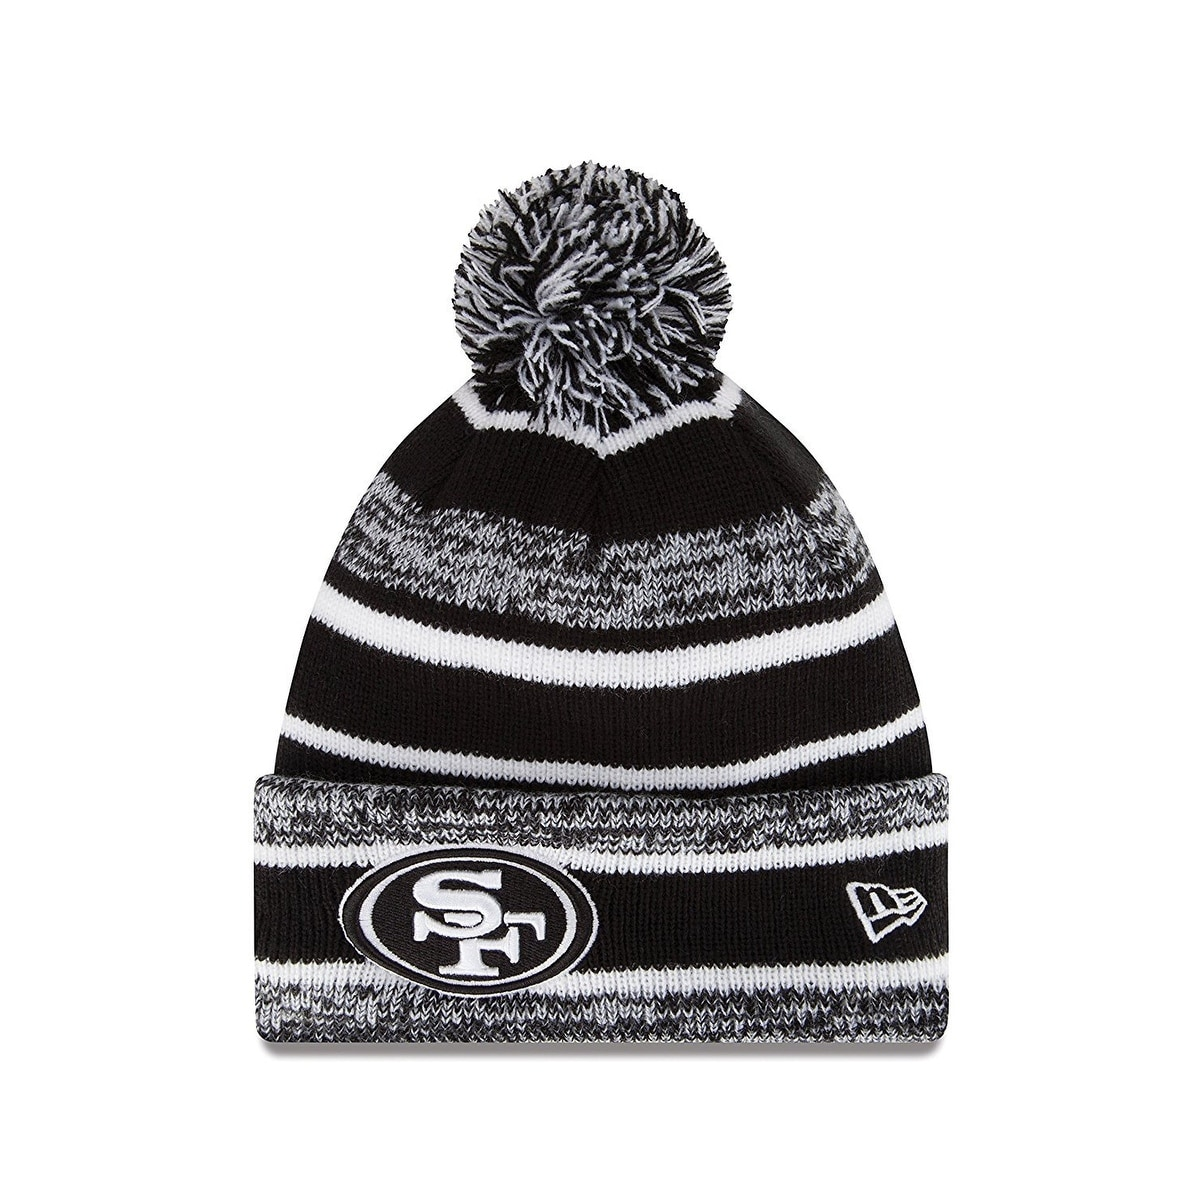 4979633c69c61 Shop New Era NFL Sport Knit Black White Pom Knit - San Francisco 49ers -  Free Shipping On Orders Over  45 - Overstock - 18795697